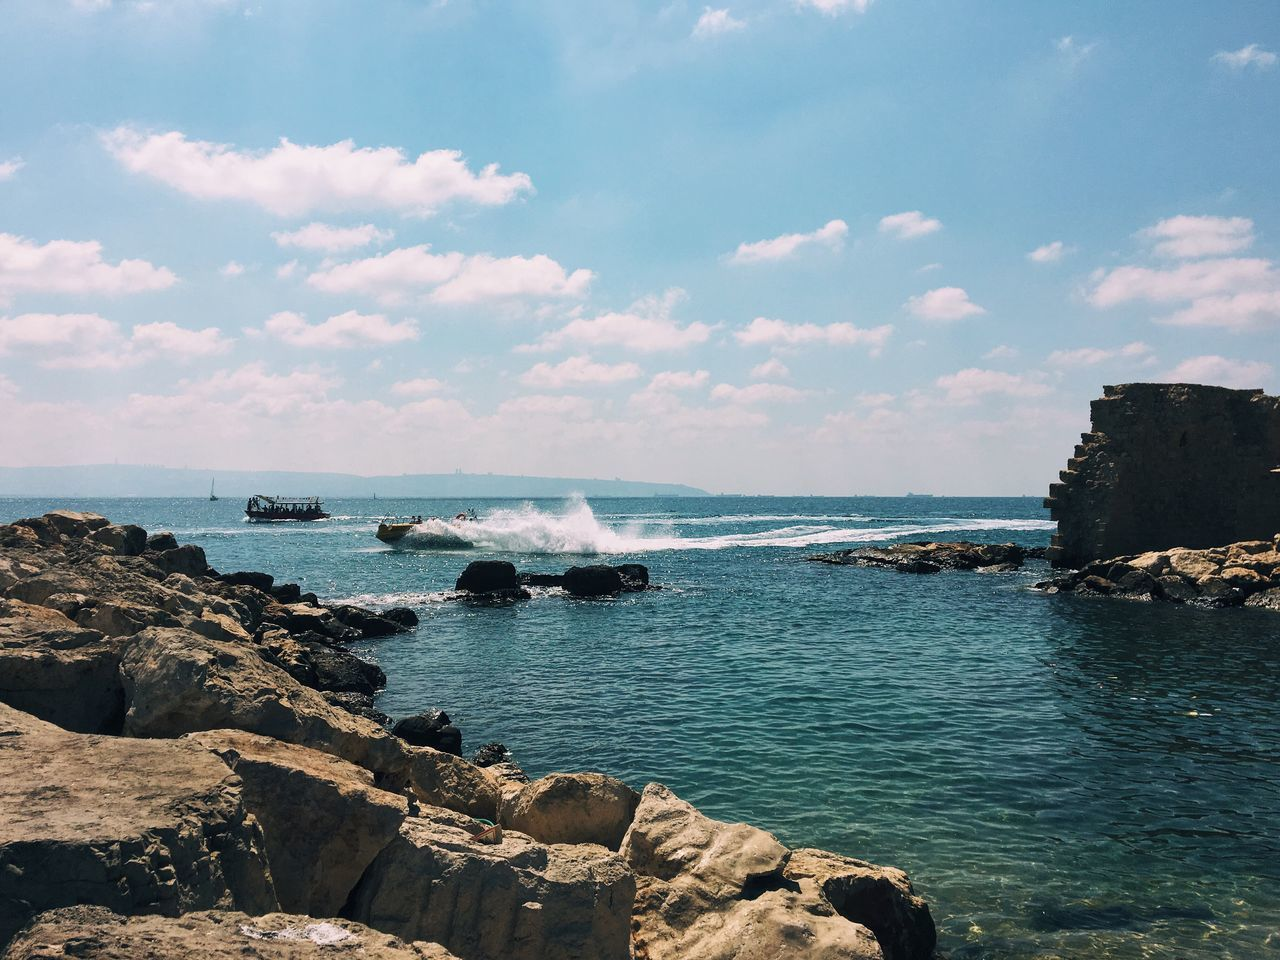 Water activities Sea Water Rock - Object Horizon Over Water Sky Tranquil Scene Scenics Tranquility Beauty In Nature Nature Rock Formation Non-urban Scene Shore Blue Cloud - Sky Day Outdoors Geology Rocky Coastline